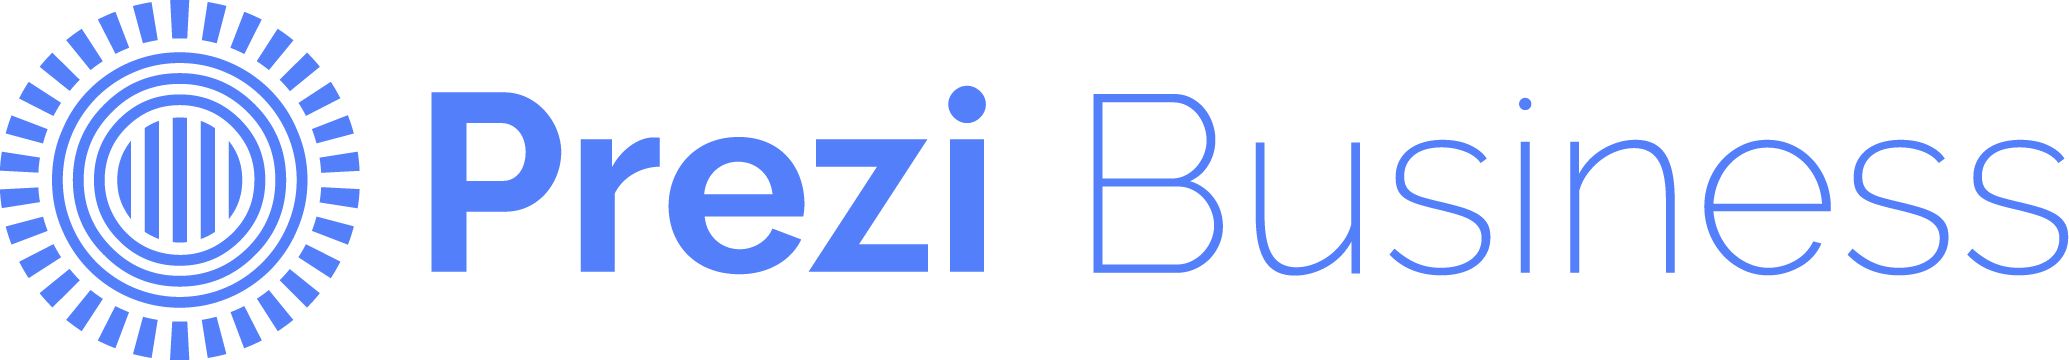 Prezi Business logo